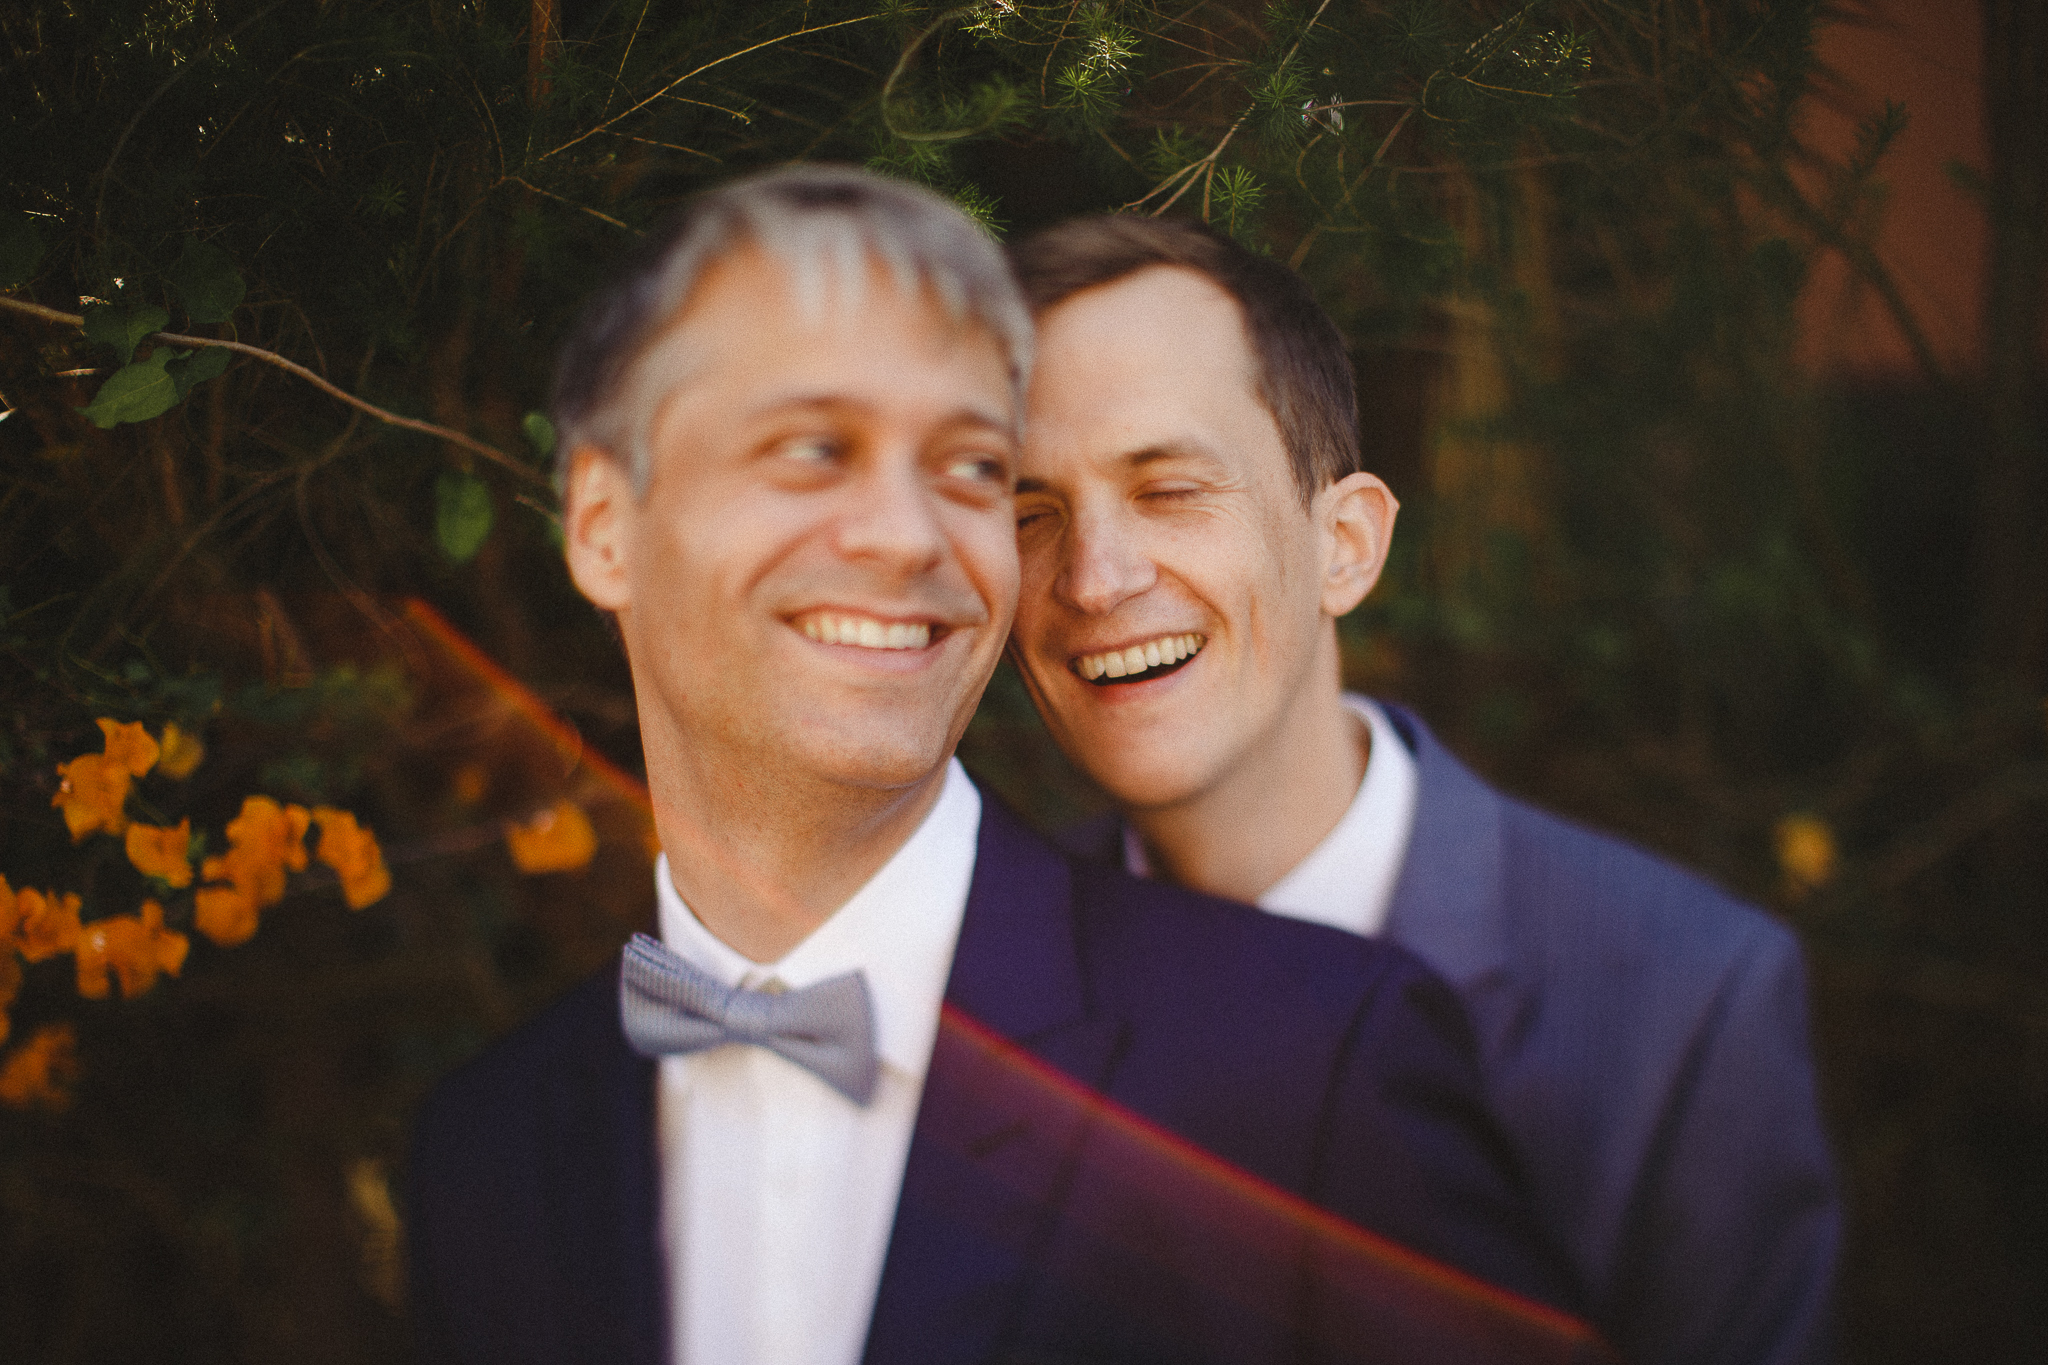 A gay couple smiles during their photo shoot after their elopement in Lisbon.